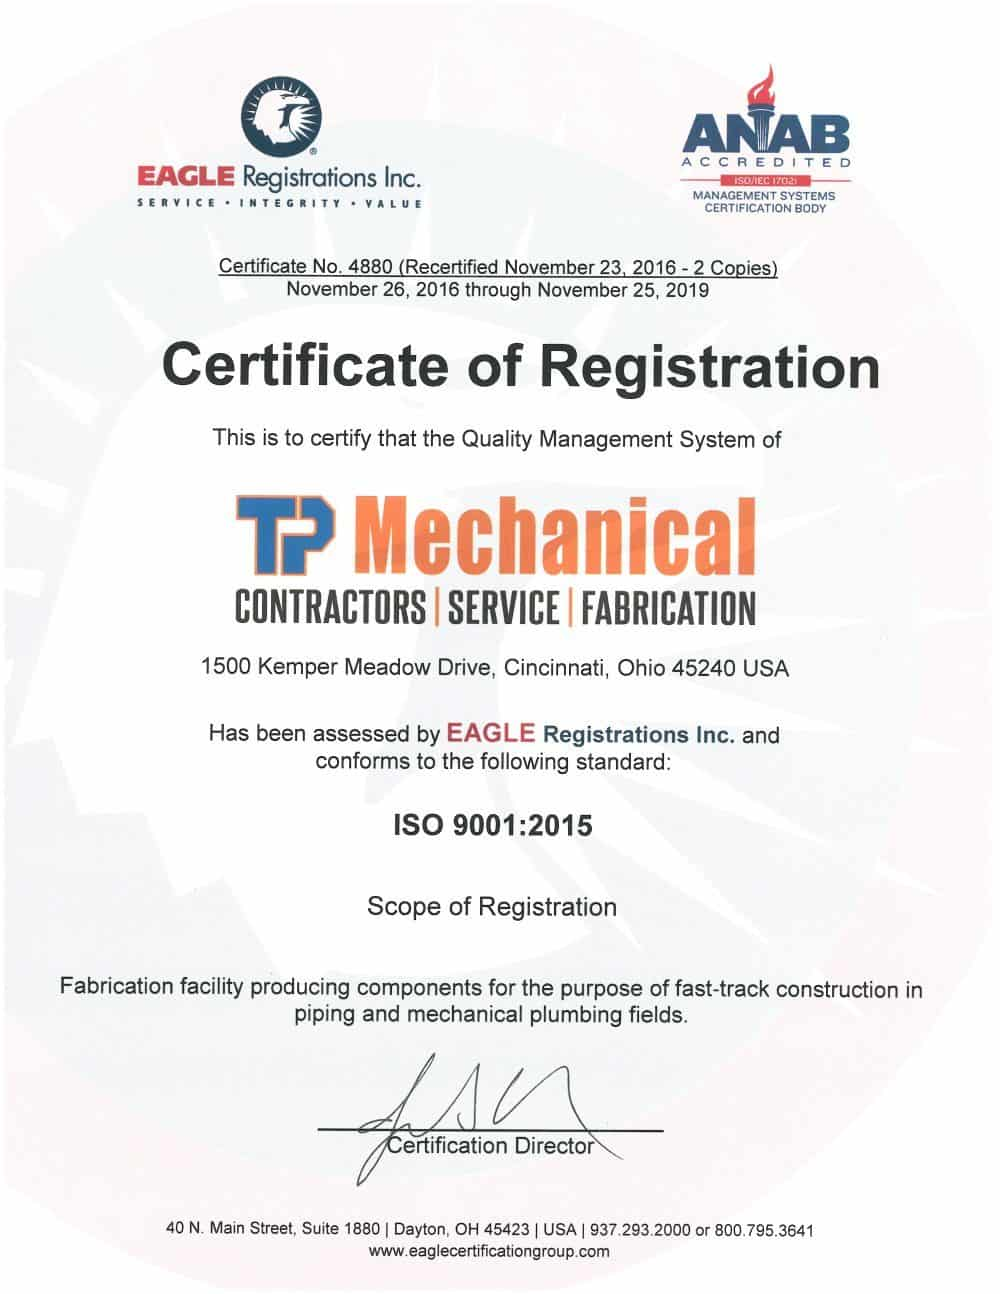 Certification for quality management systems tp mechanical piping and mechanical plumbing fields the firms iso 90012015 certificate is registered through eagle registrations inc and anab accredited firm xflitez Gallery